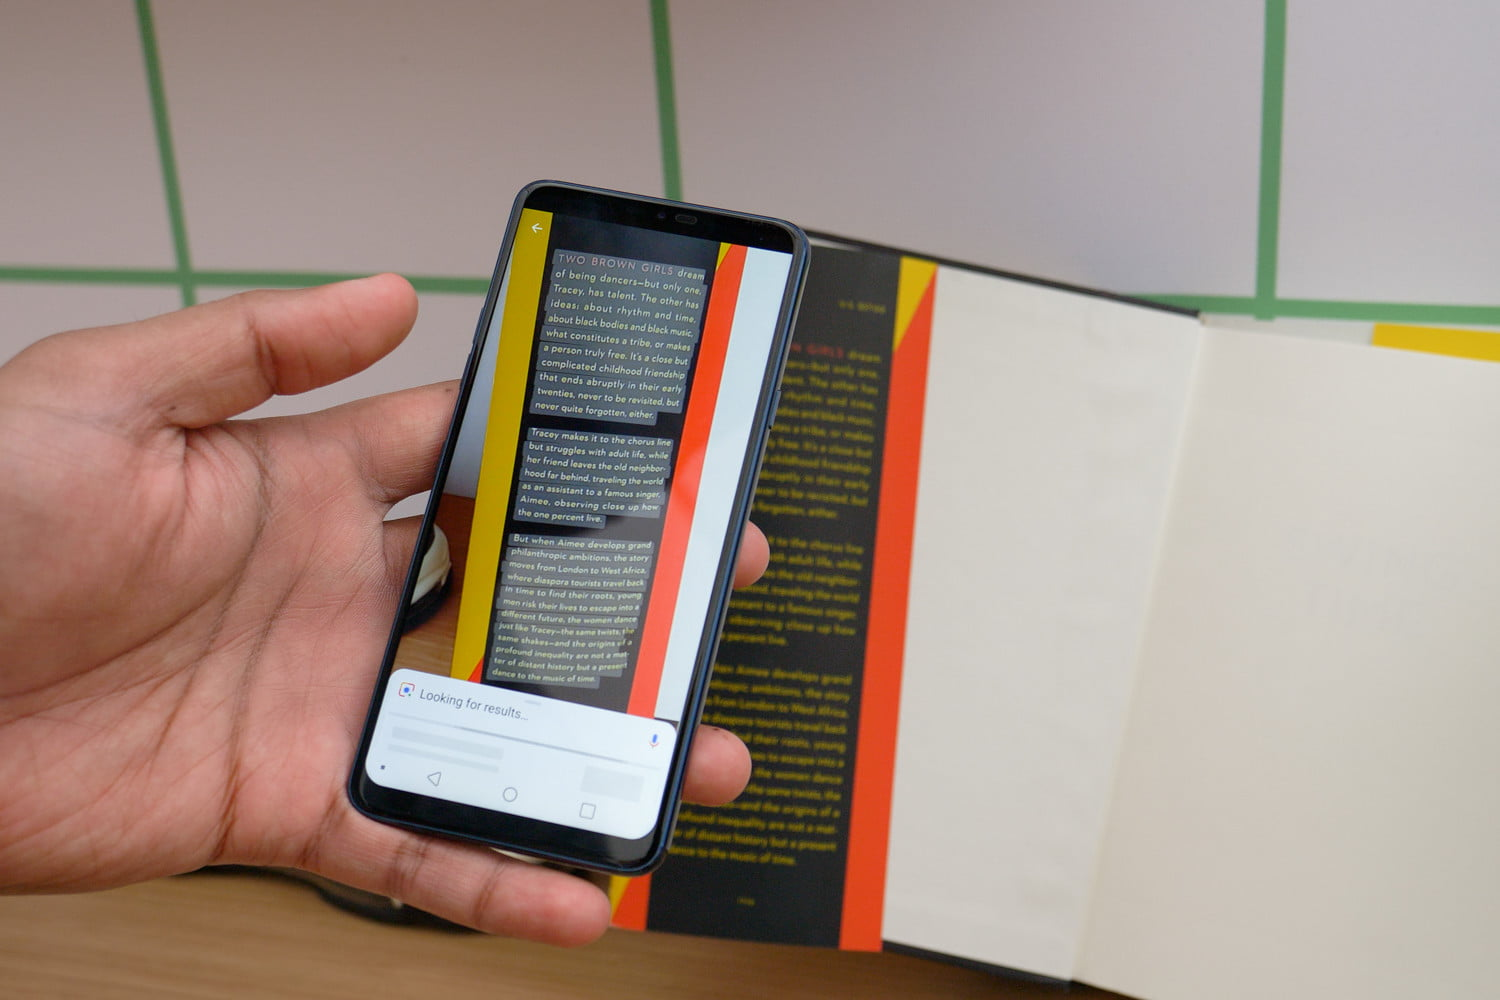 English To Italian Translator Google: Google Lens' Smart Text Selection, Style Match To Launch